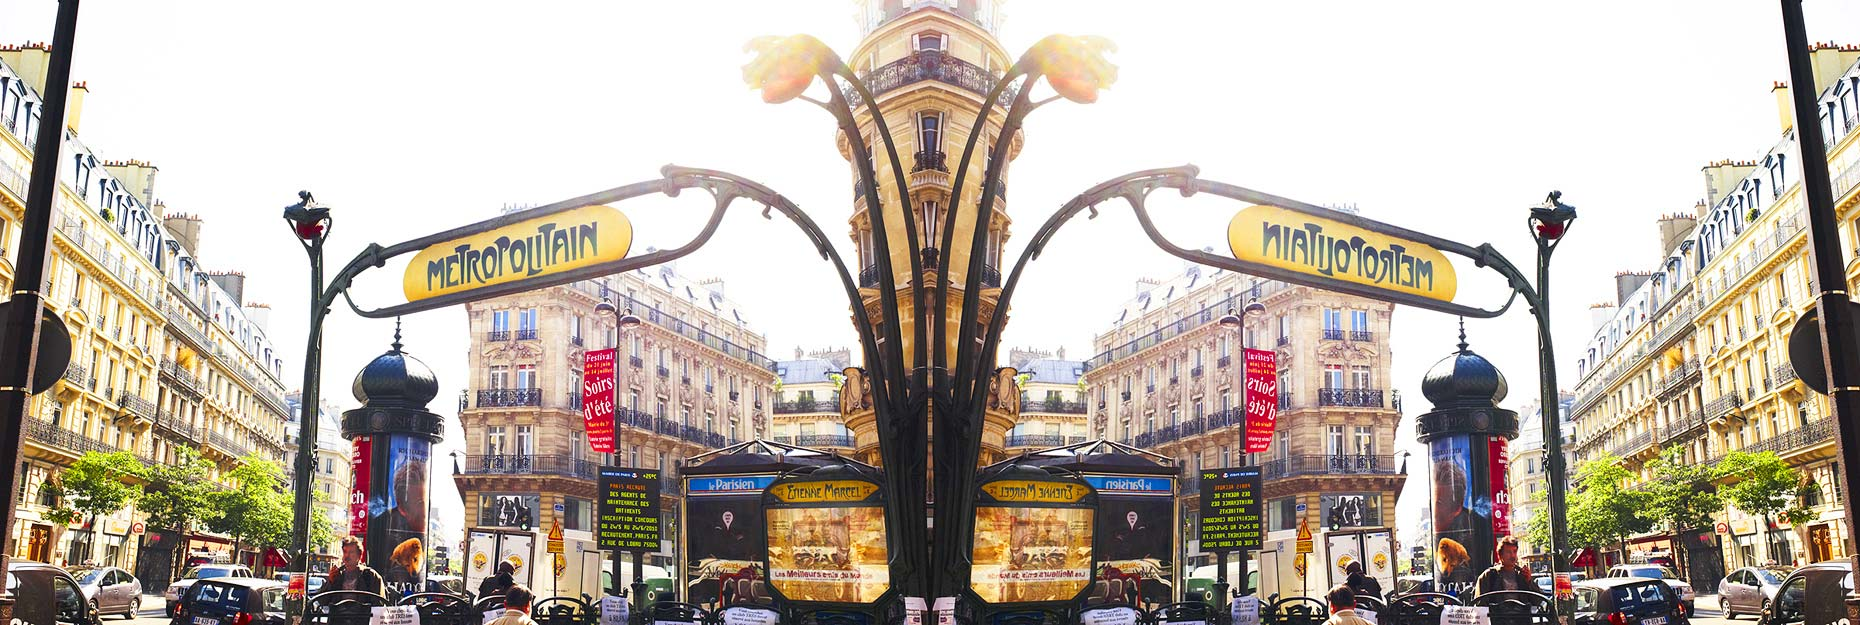 Metropolitain_Paris_2010.jpg